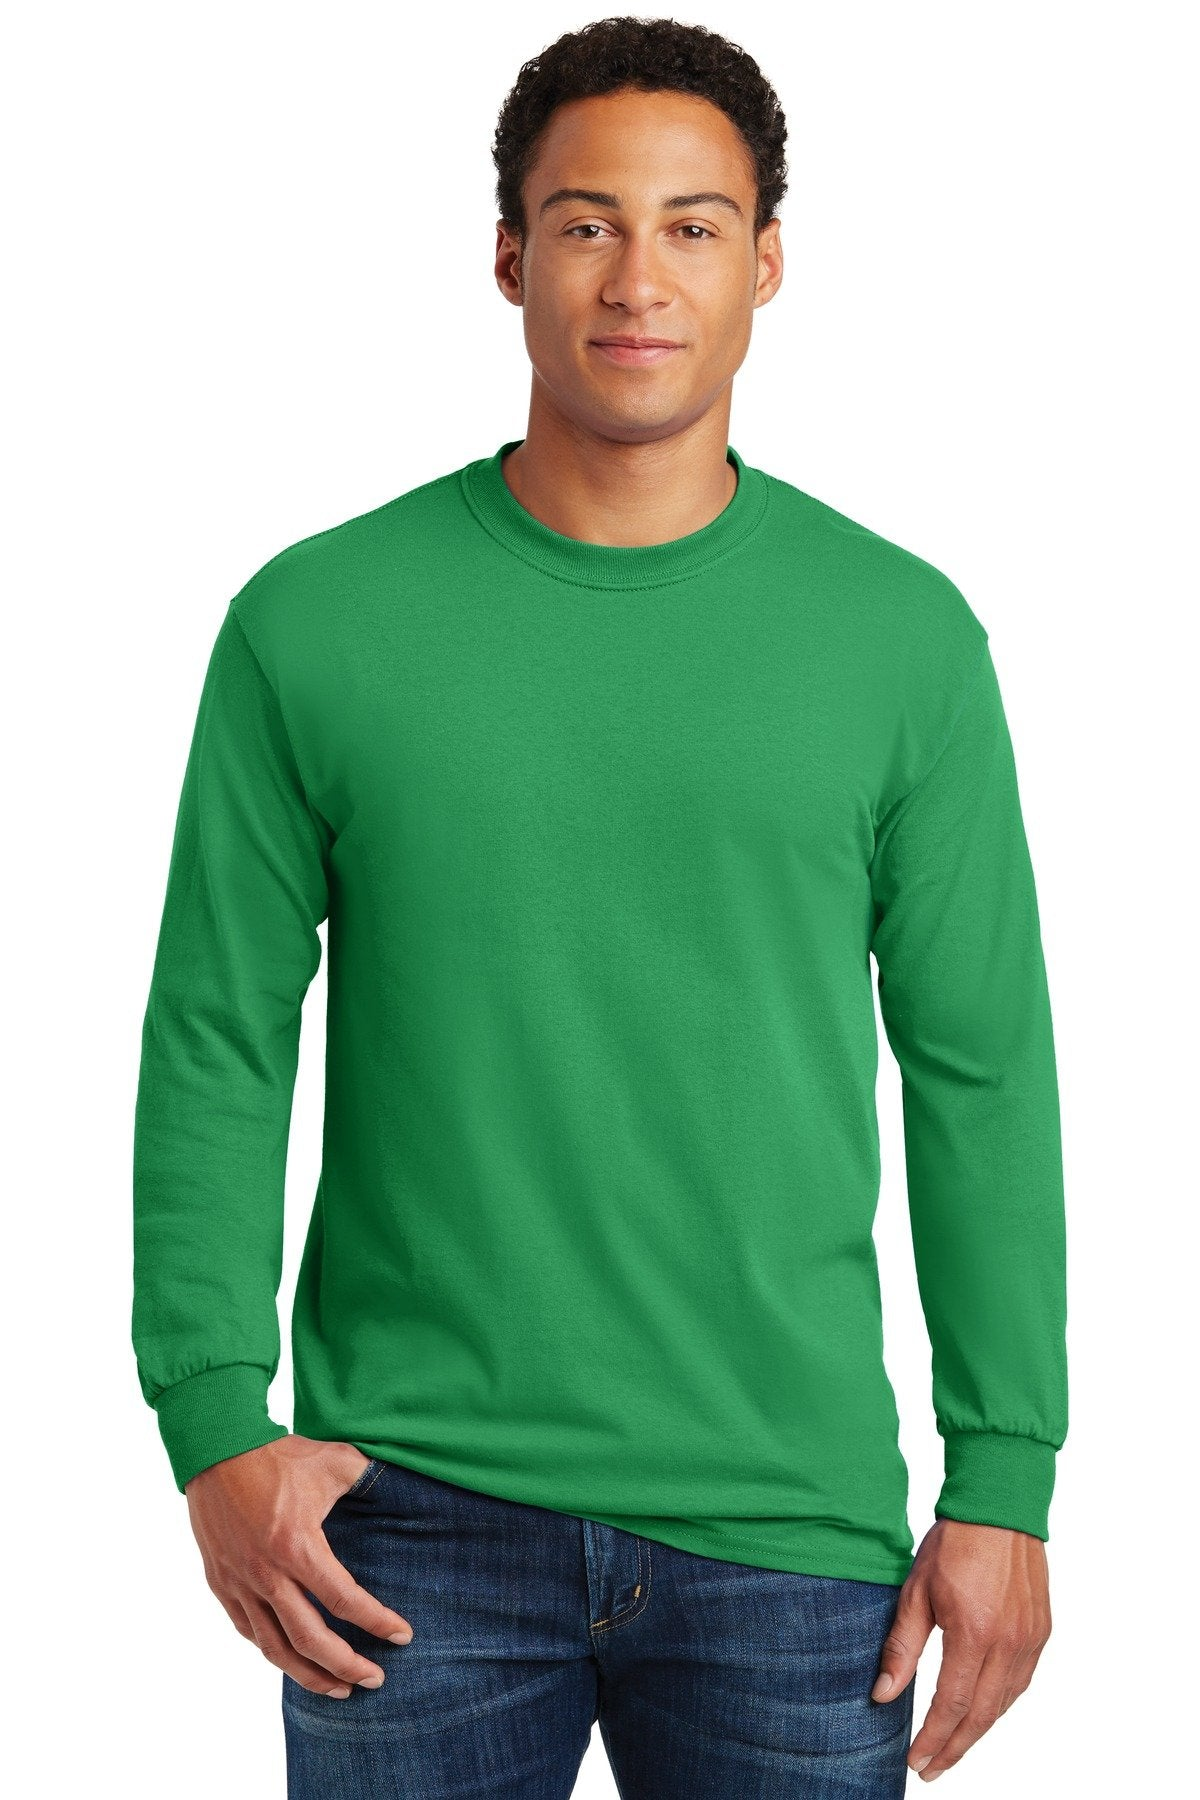 Irish Green - Gildan 5400